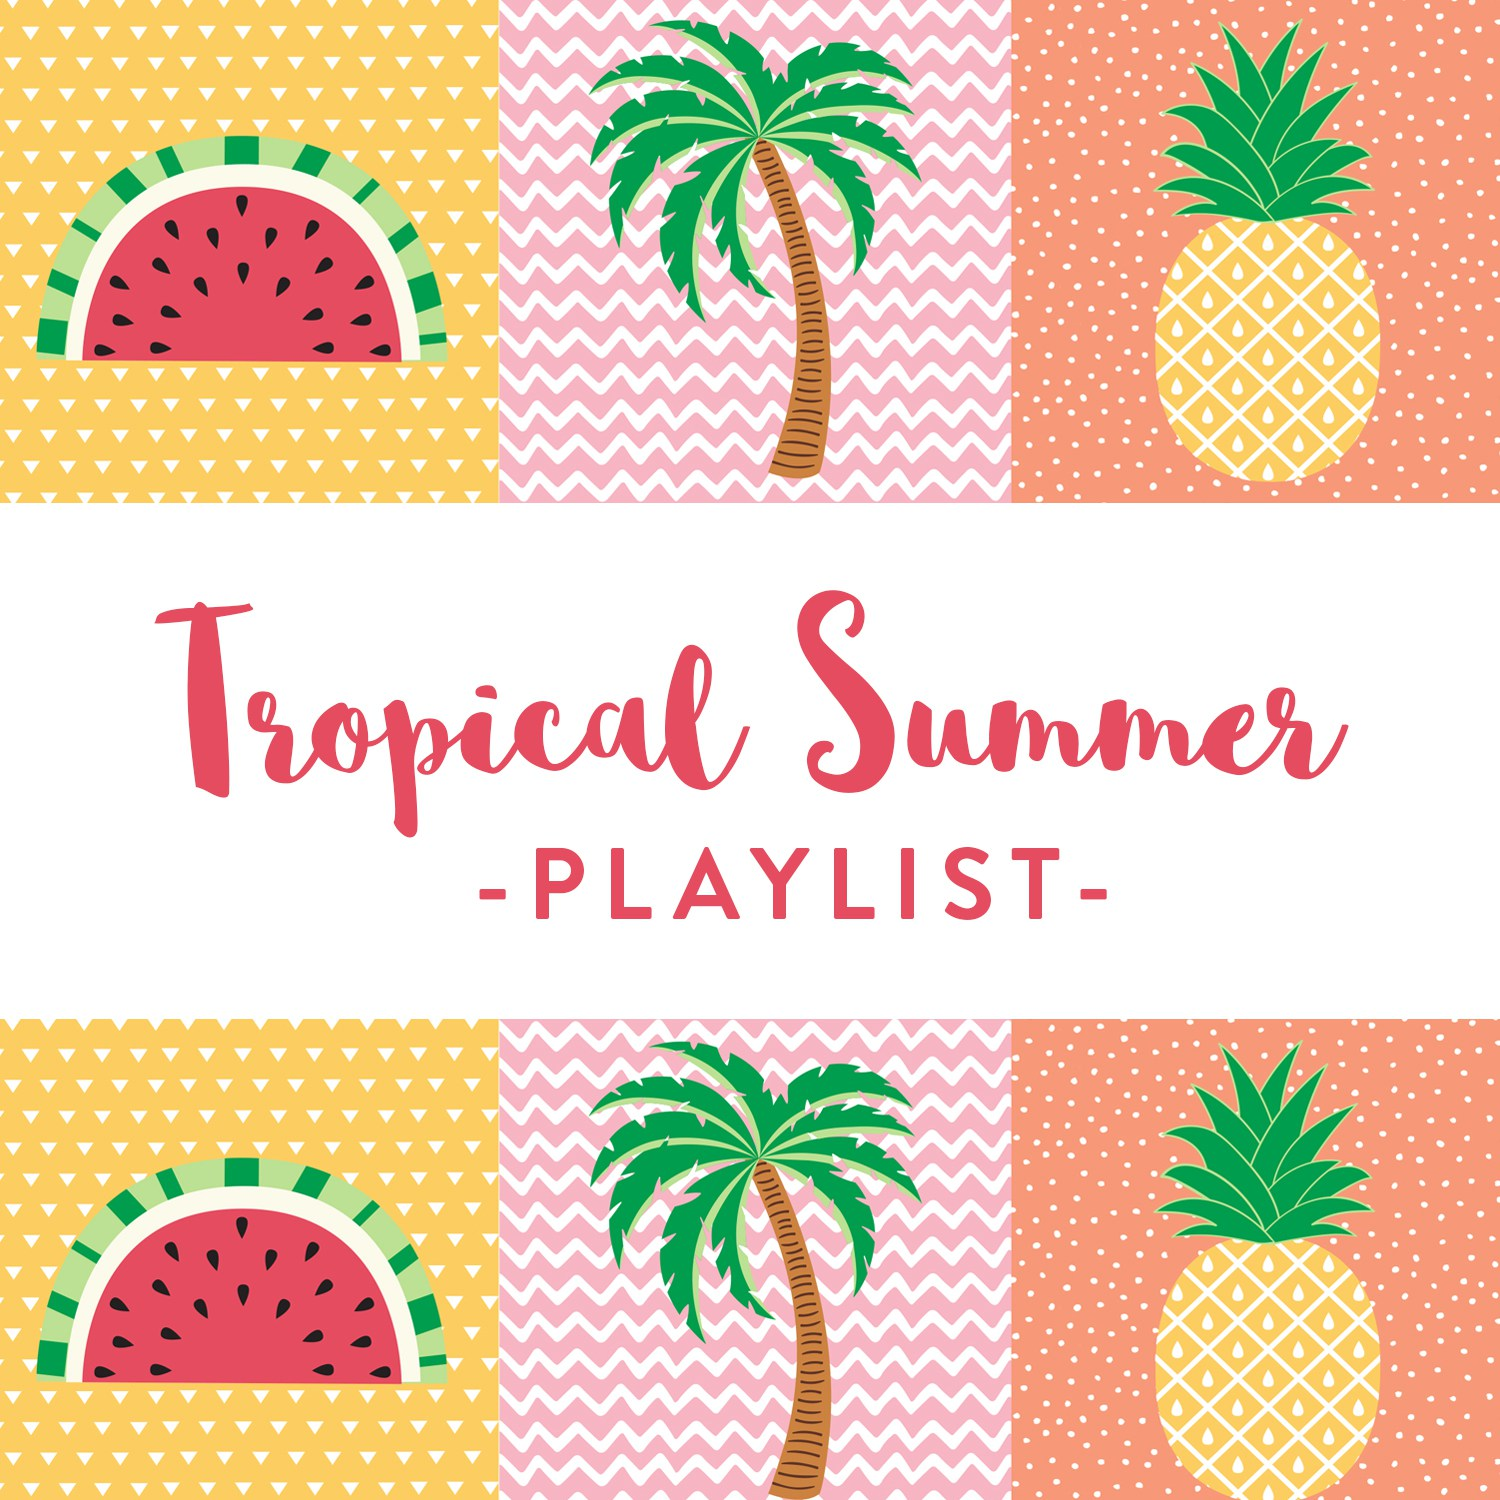 Tropical-summer-playlist.jpg